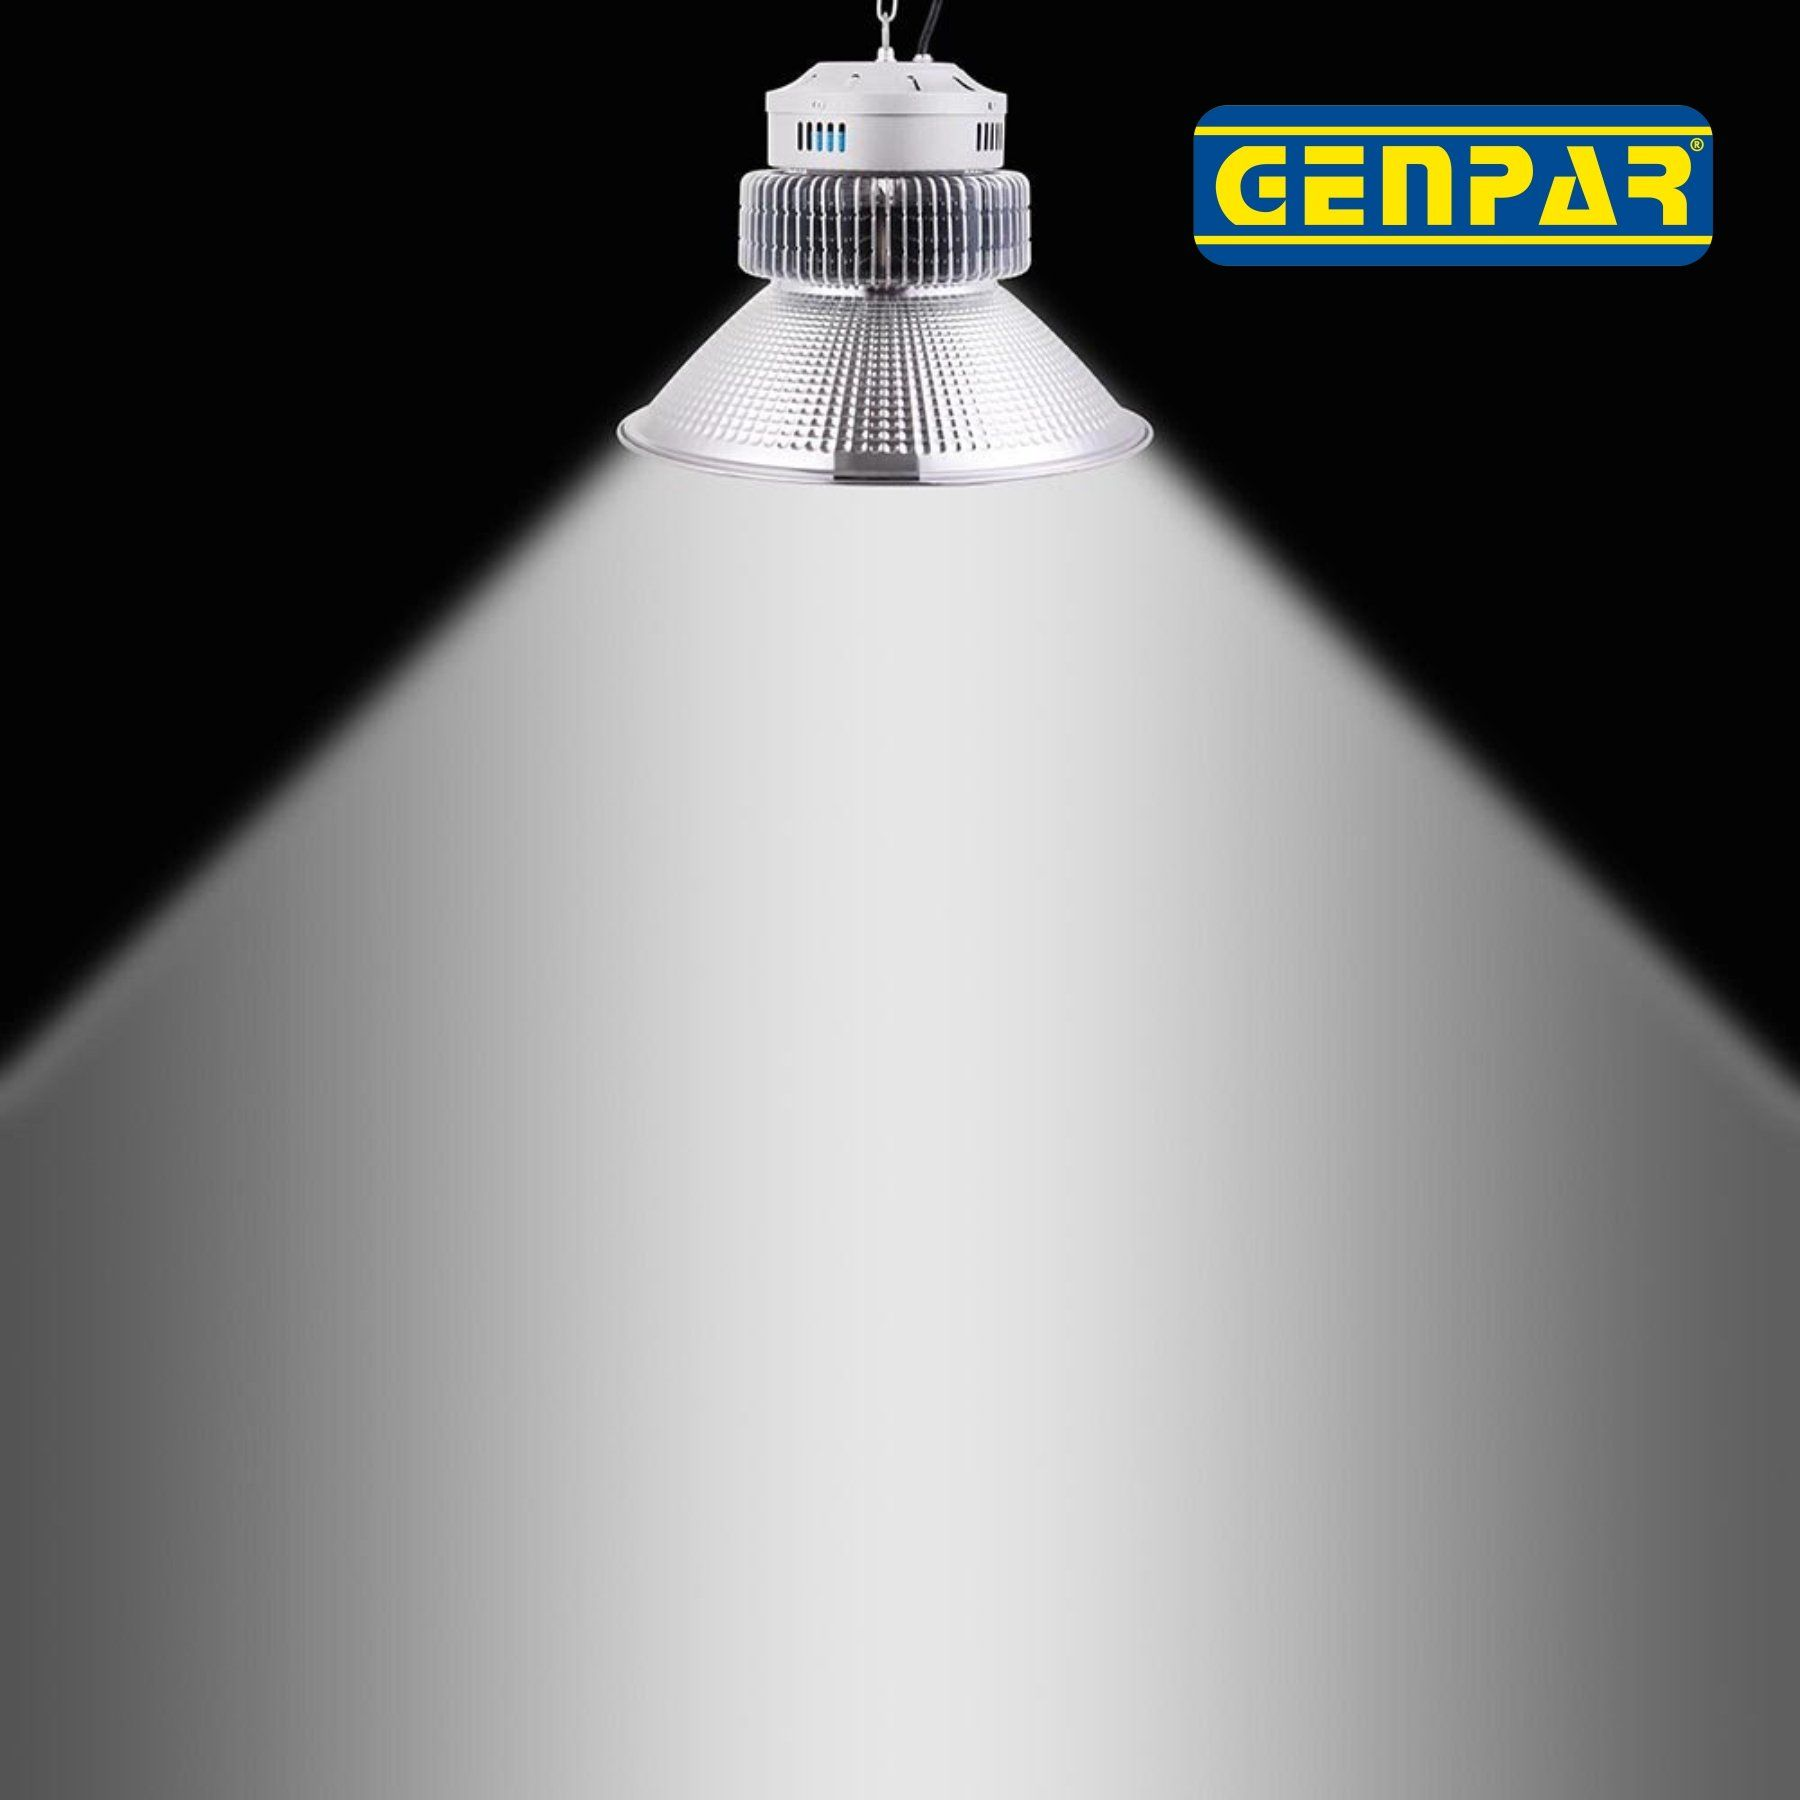 Genpar 200w High Bay Led Lighting Commercial Warehouse Hanging